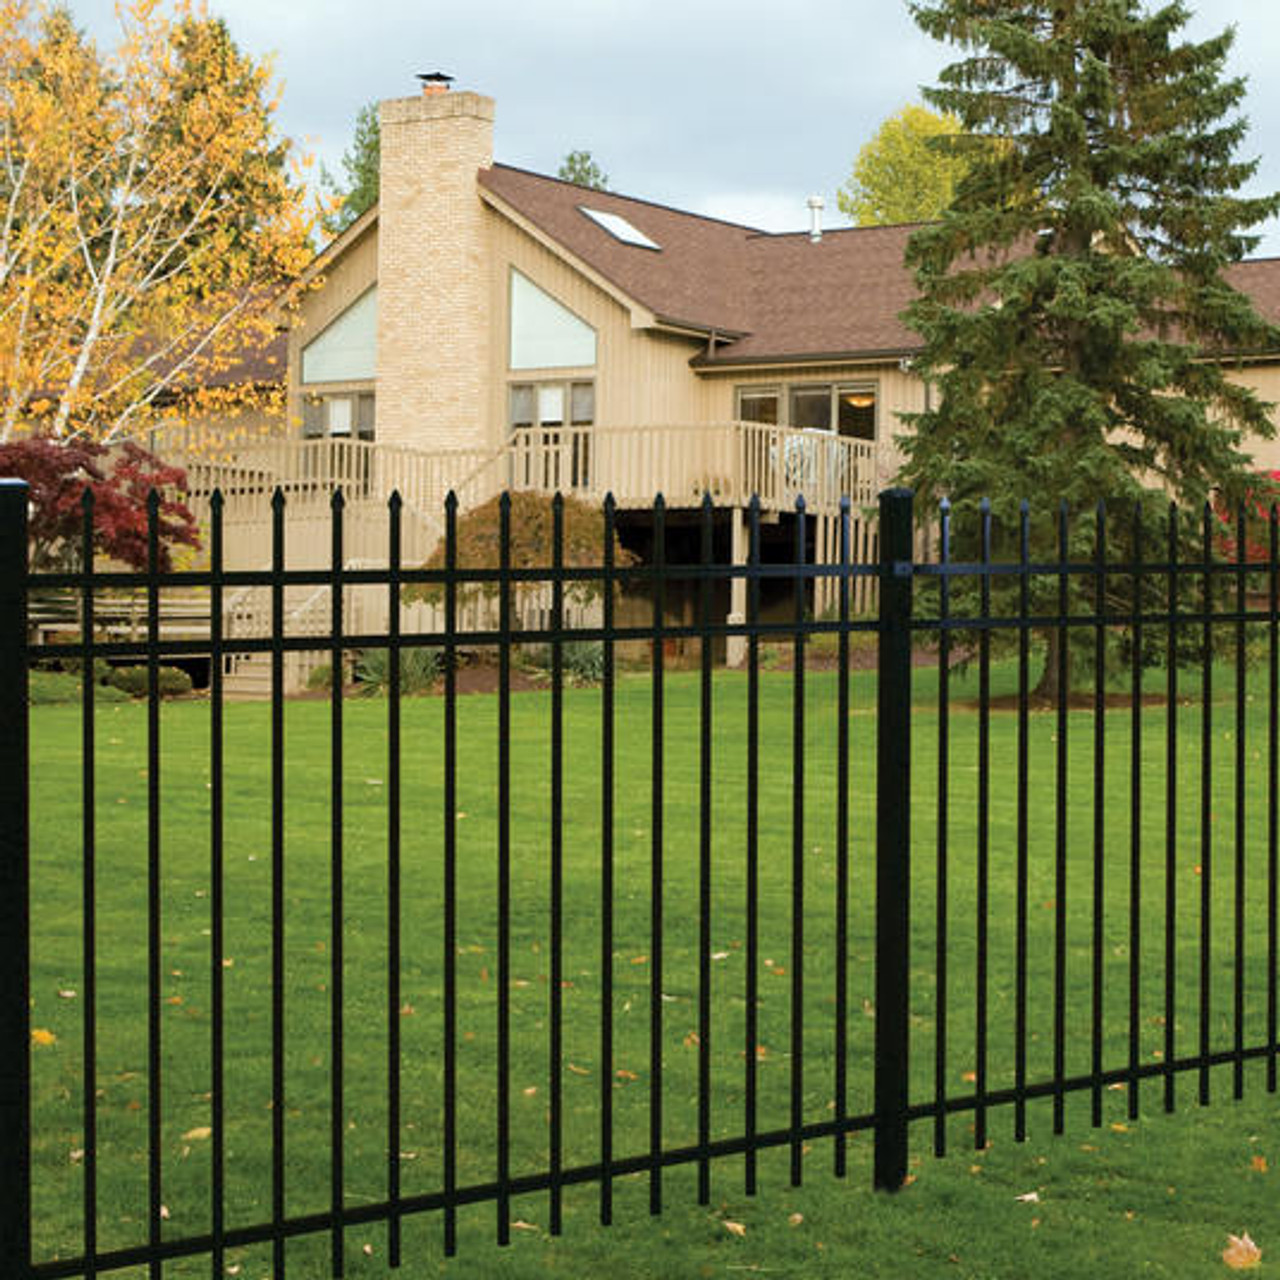 Regis 3131 3-Rail Spear Top Aluminum Fence Panels - Choose Your Height &  Color